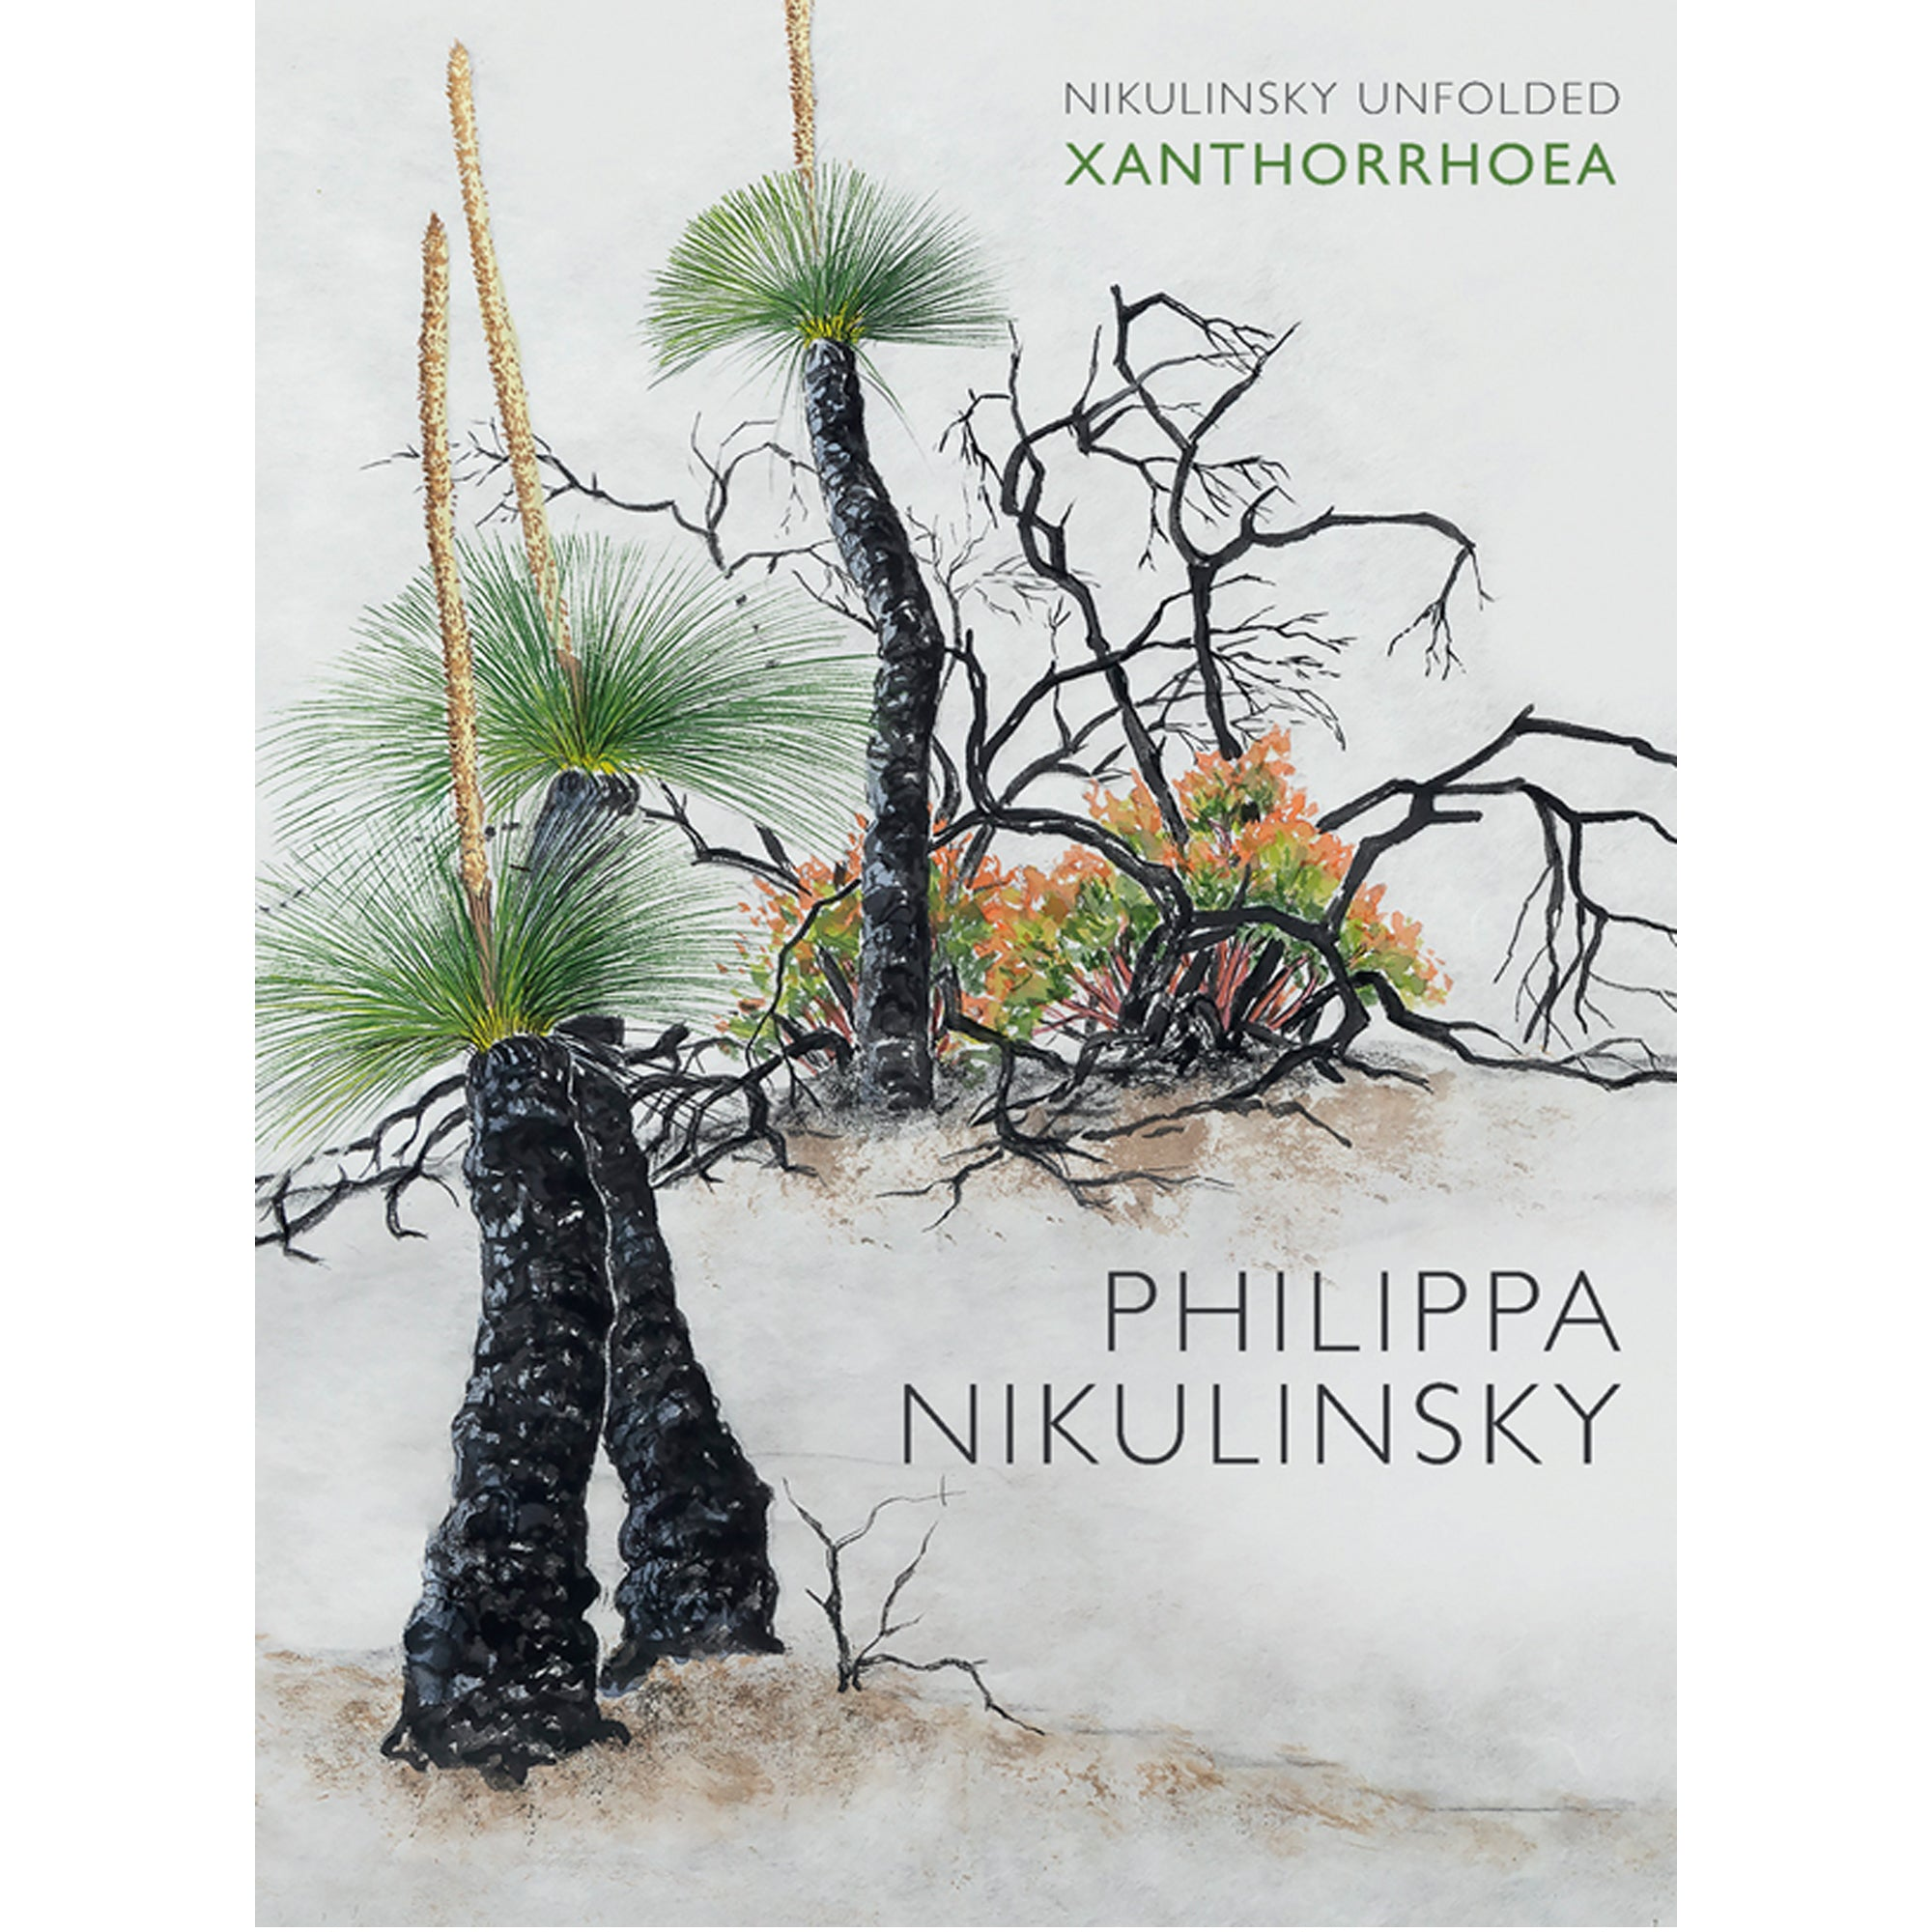 Philippa Nikulinski - 'Unfolded Xanthorrhoea' Hardcover Artist's Book (m/fac01)